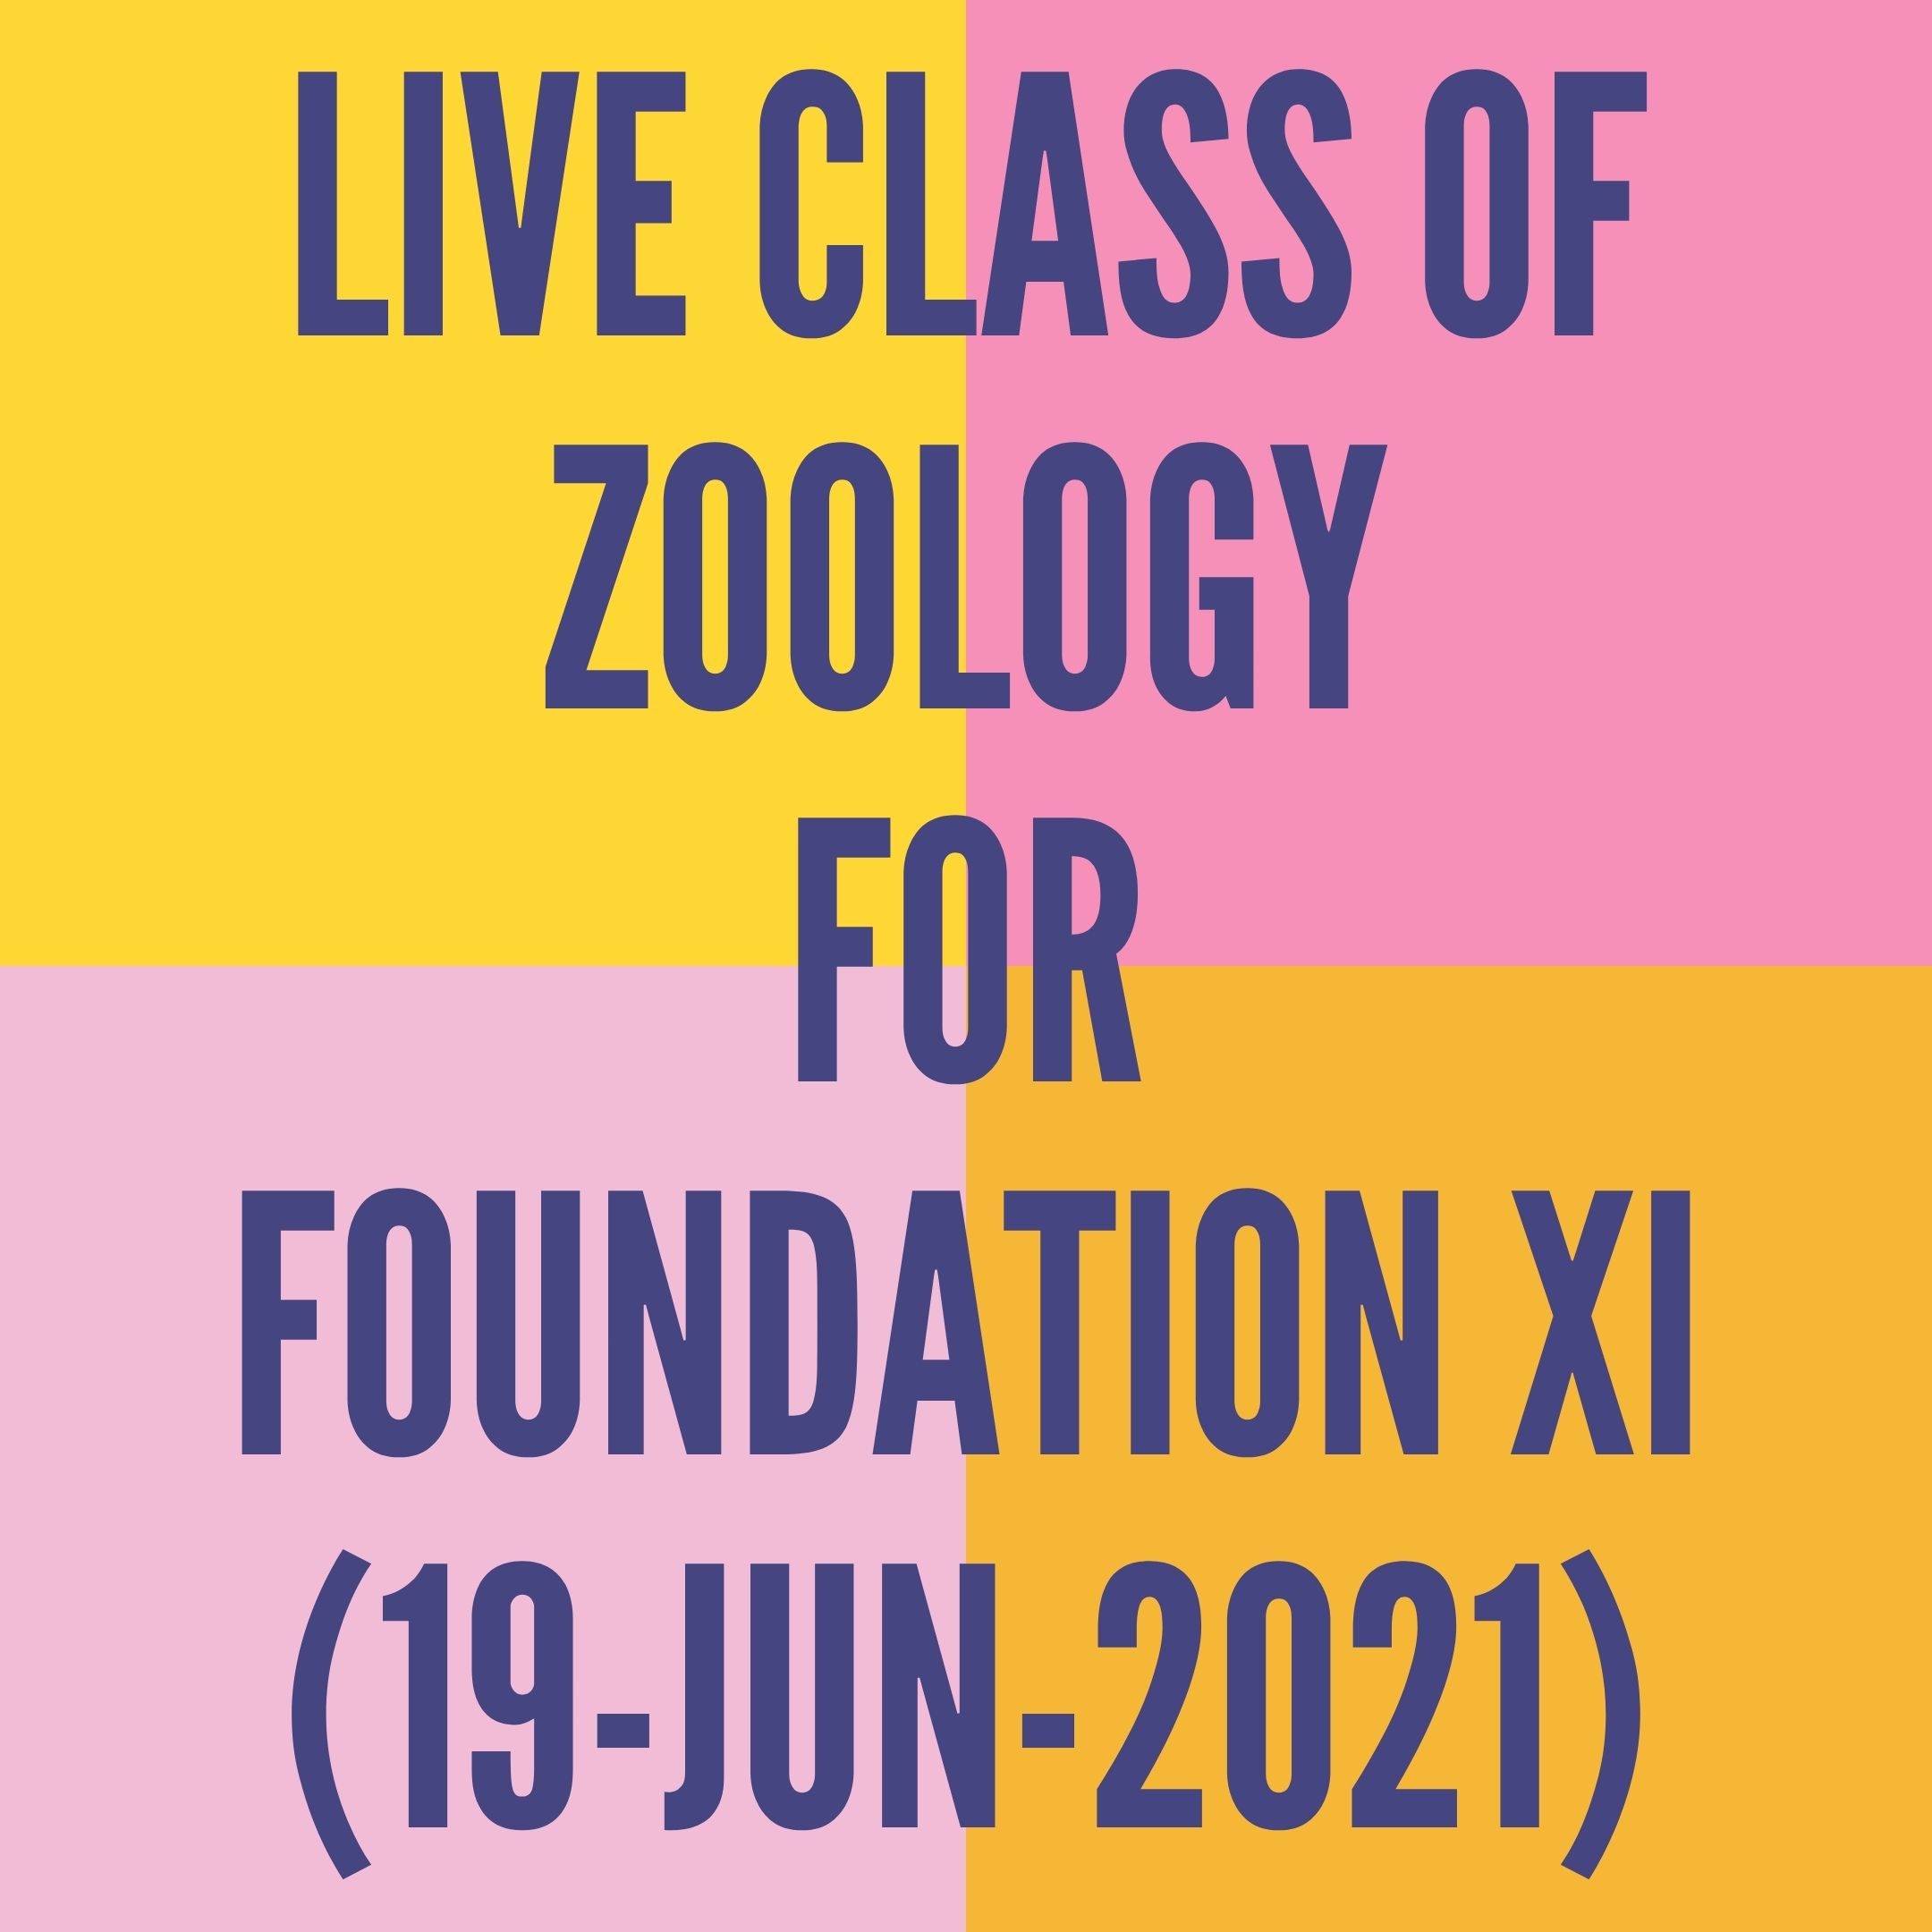 LIVE CLASS OF ZOOLOGY FOR FOUNDATION XI (19-JUN-2021) DIGESTIVE SYSTEM